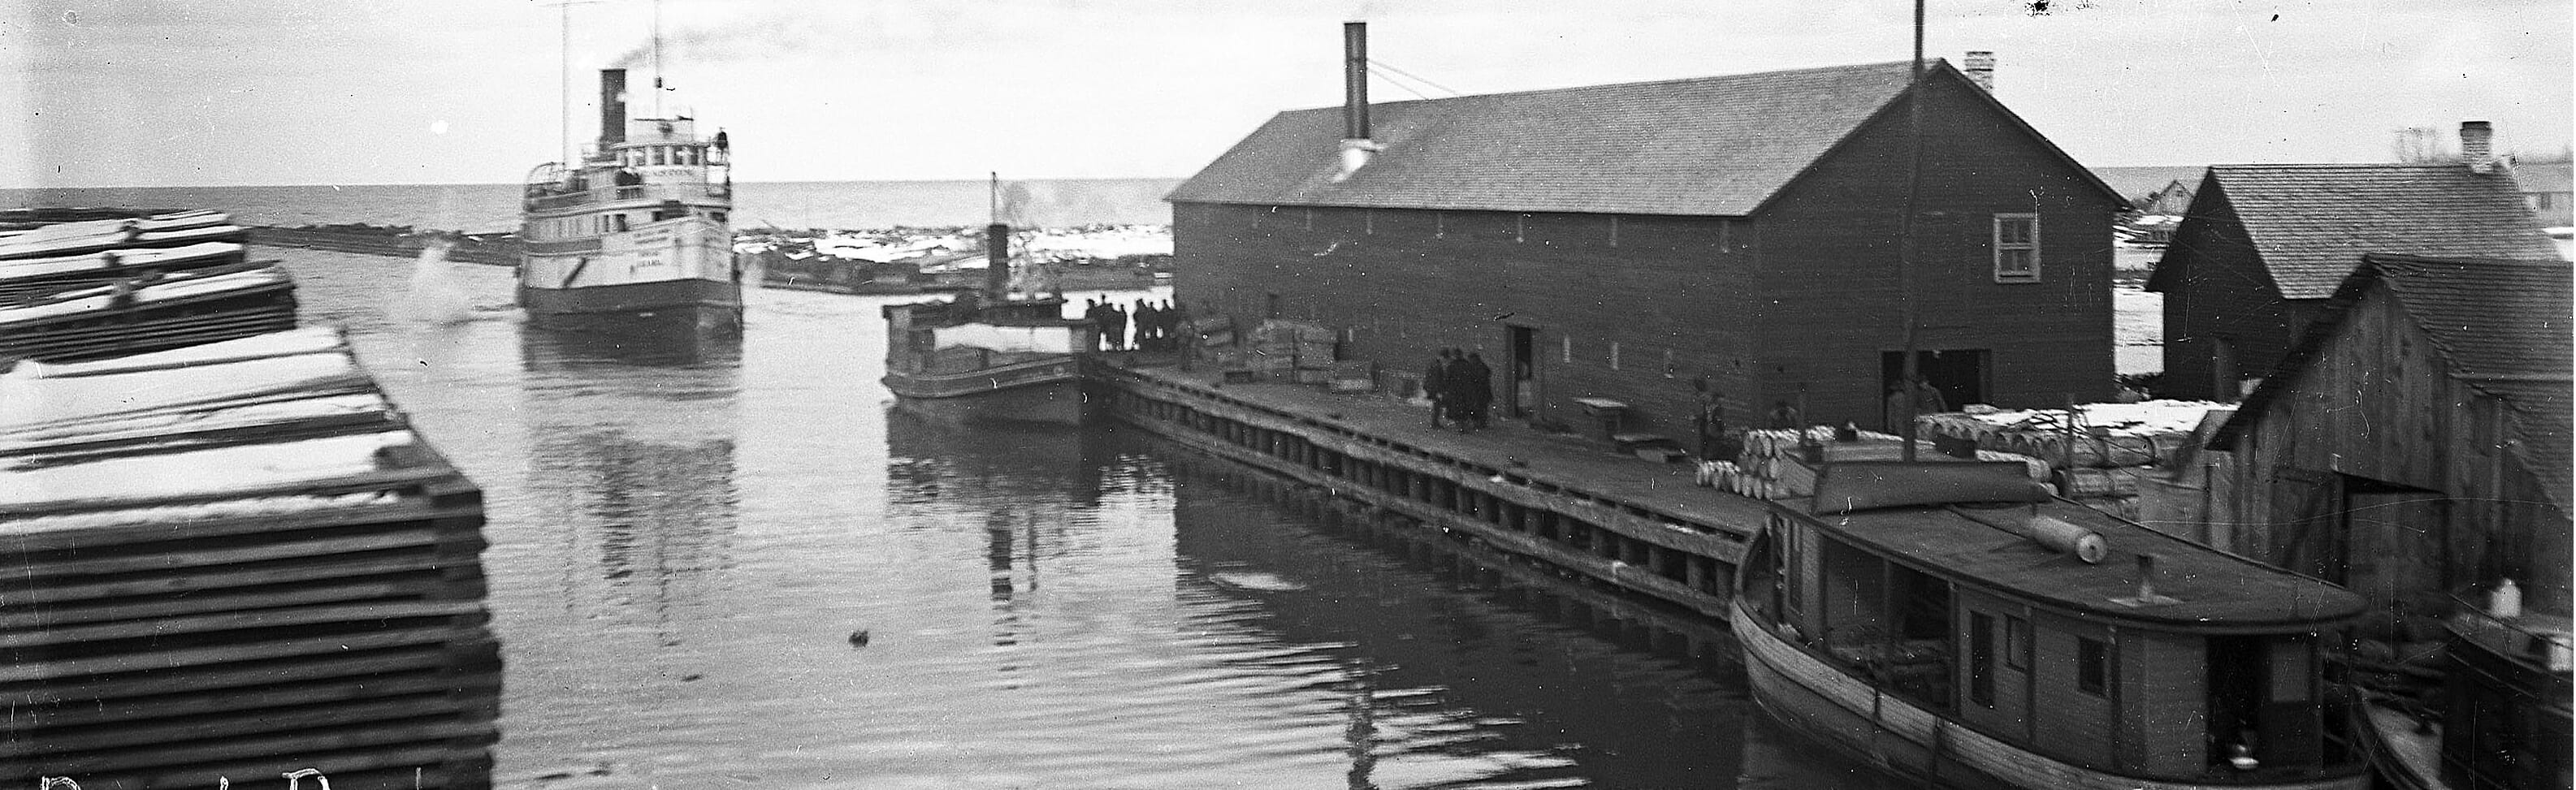 Booth Fisheries Buildings at Port Wing Harbor